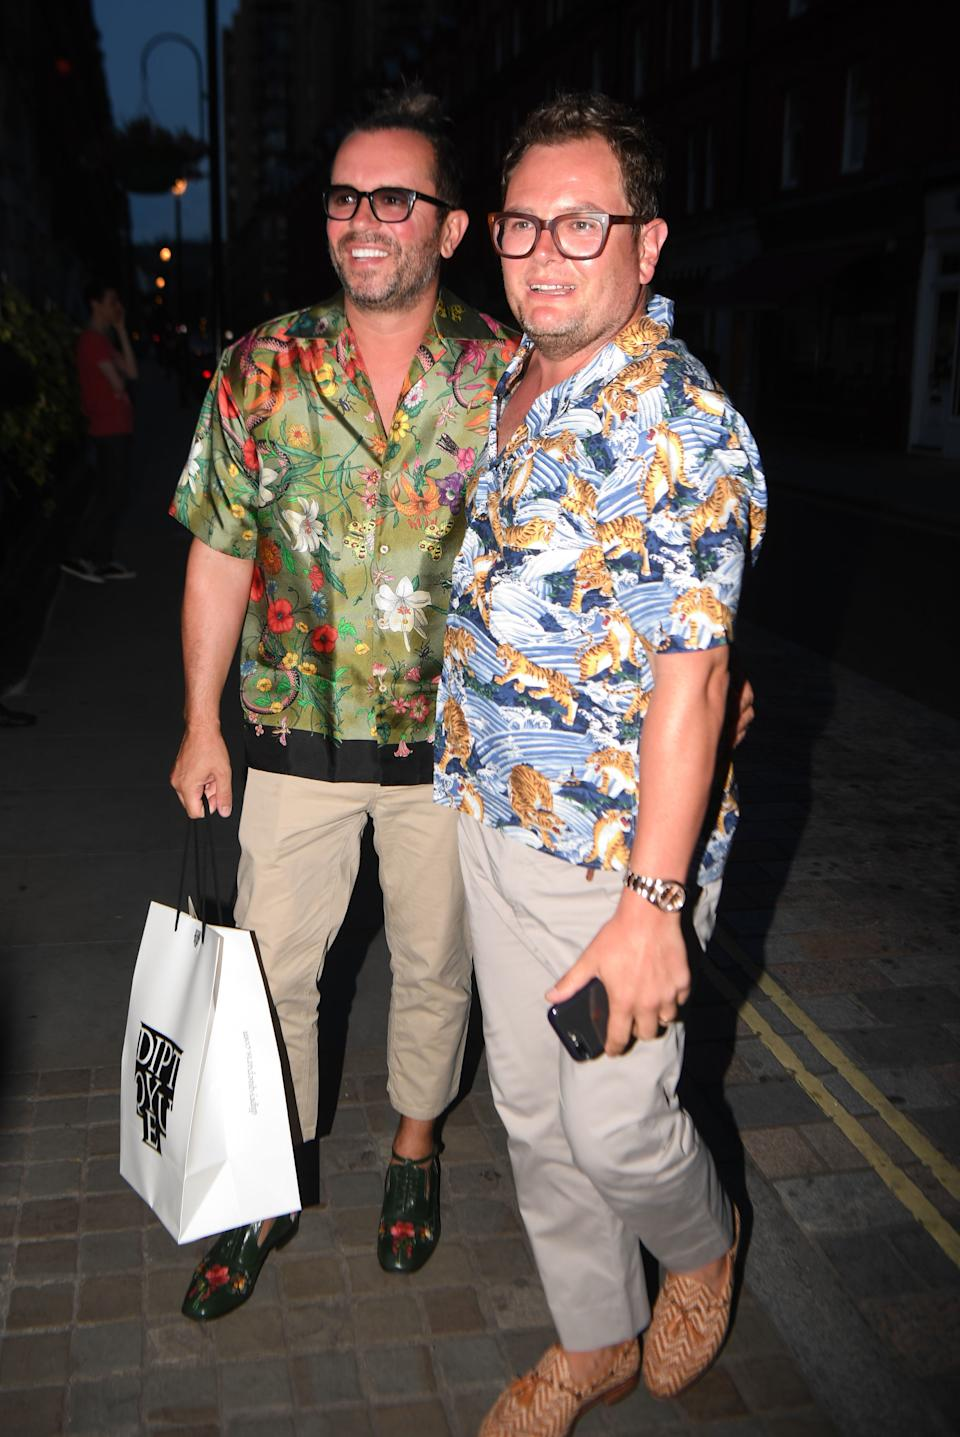 Alan Carr and partner Paul Drayton (left) arriving at Chiltern Firehouse in London to celebrate Kylie Minogue's 50th birthday.